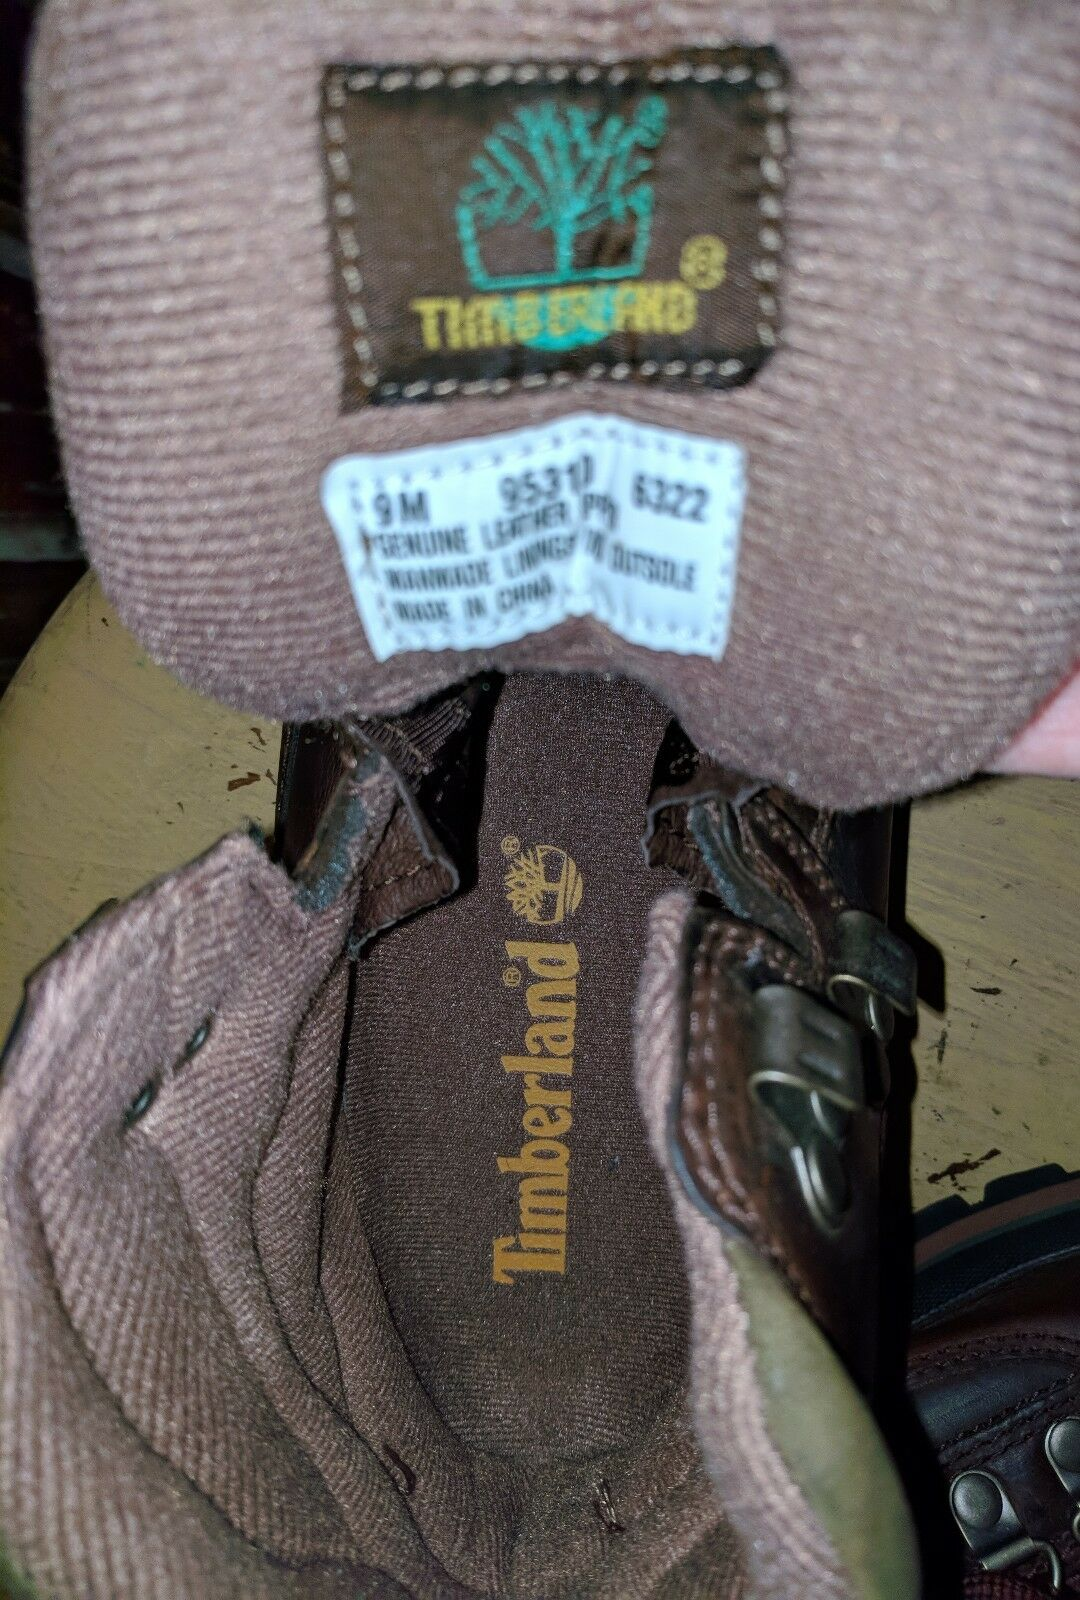 TIMBERLAND LADIES LEATHER TRAIL HARDCORE HIKING TRAIL LEATHER Stiefel BROWN 9 M STOMPER ANKLE fe3696